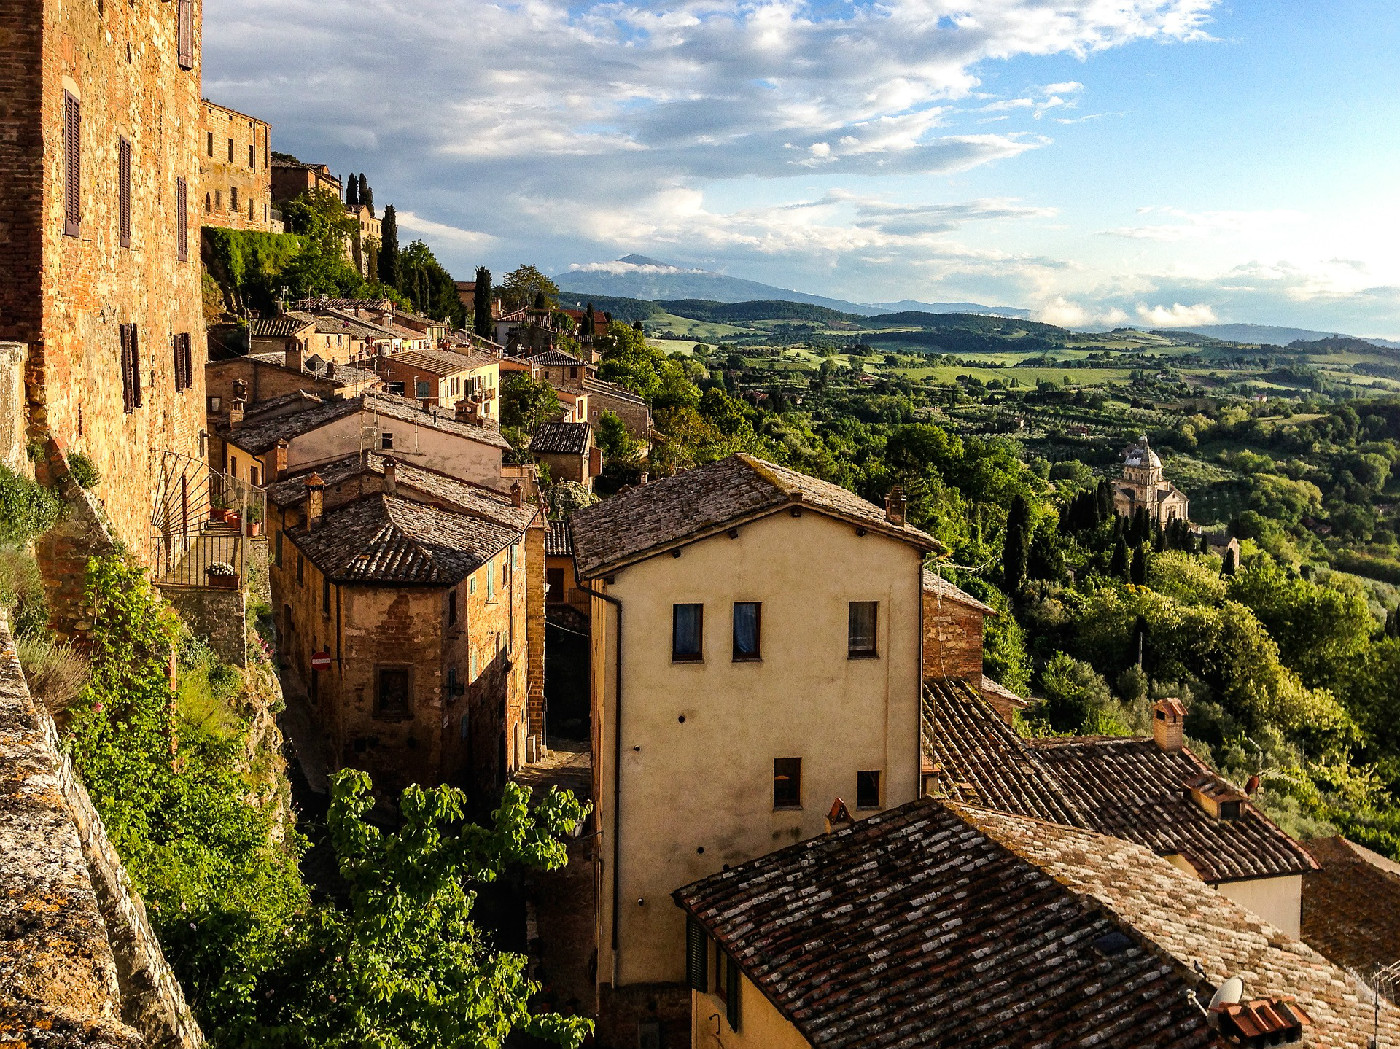 What to see in Montepulciano in autumn